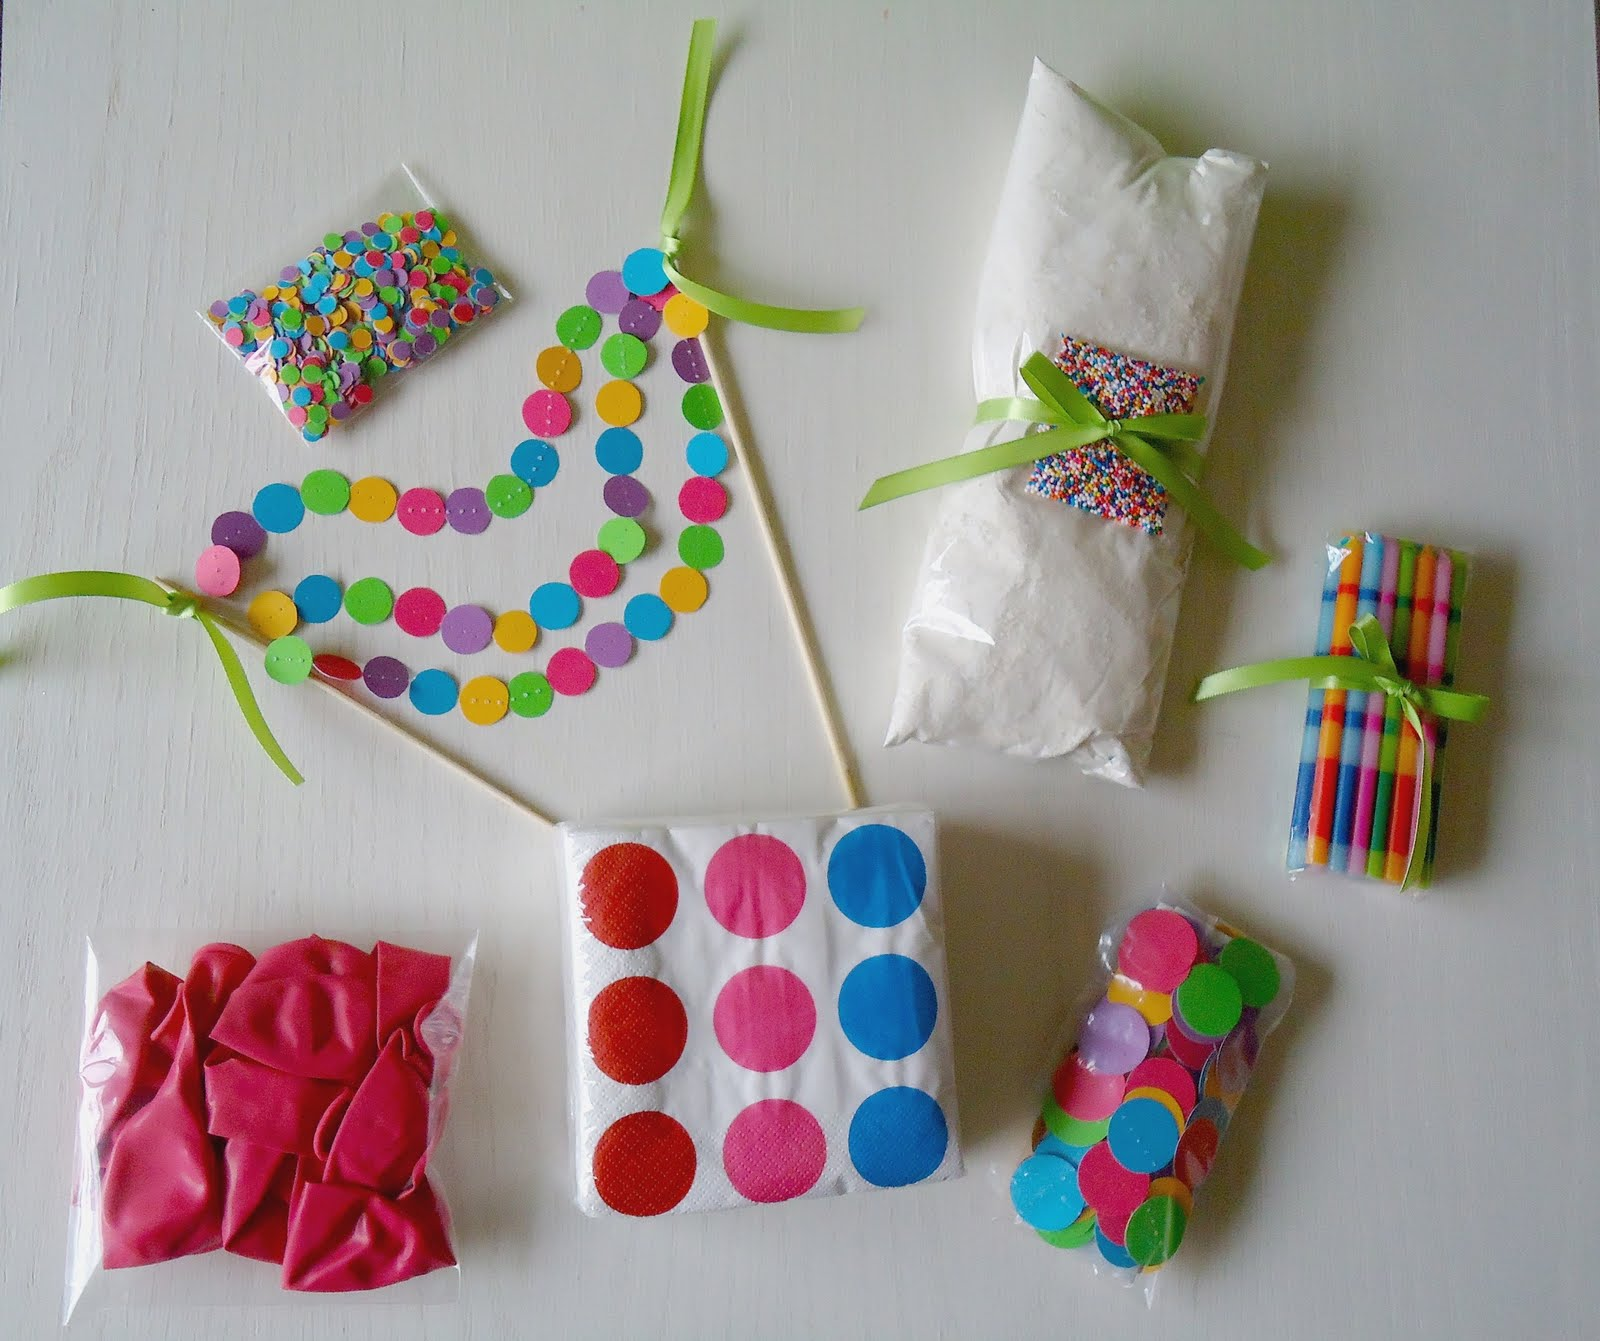 Tales Of Three Bakers: Easy Confetti Banners + Birthday Kit